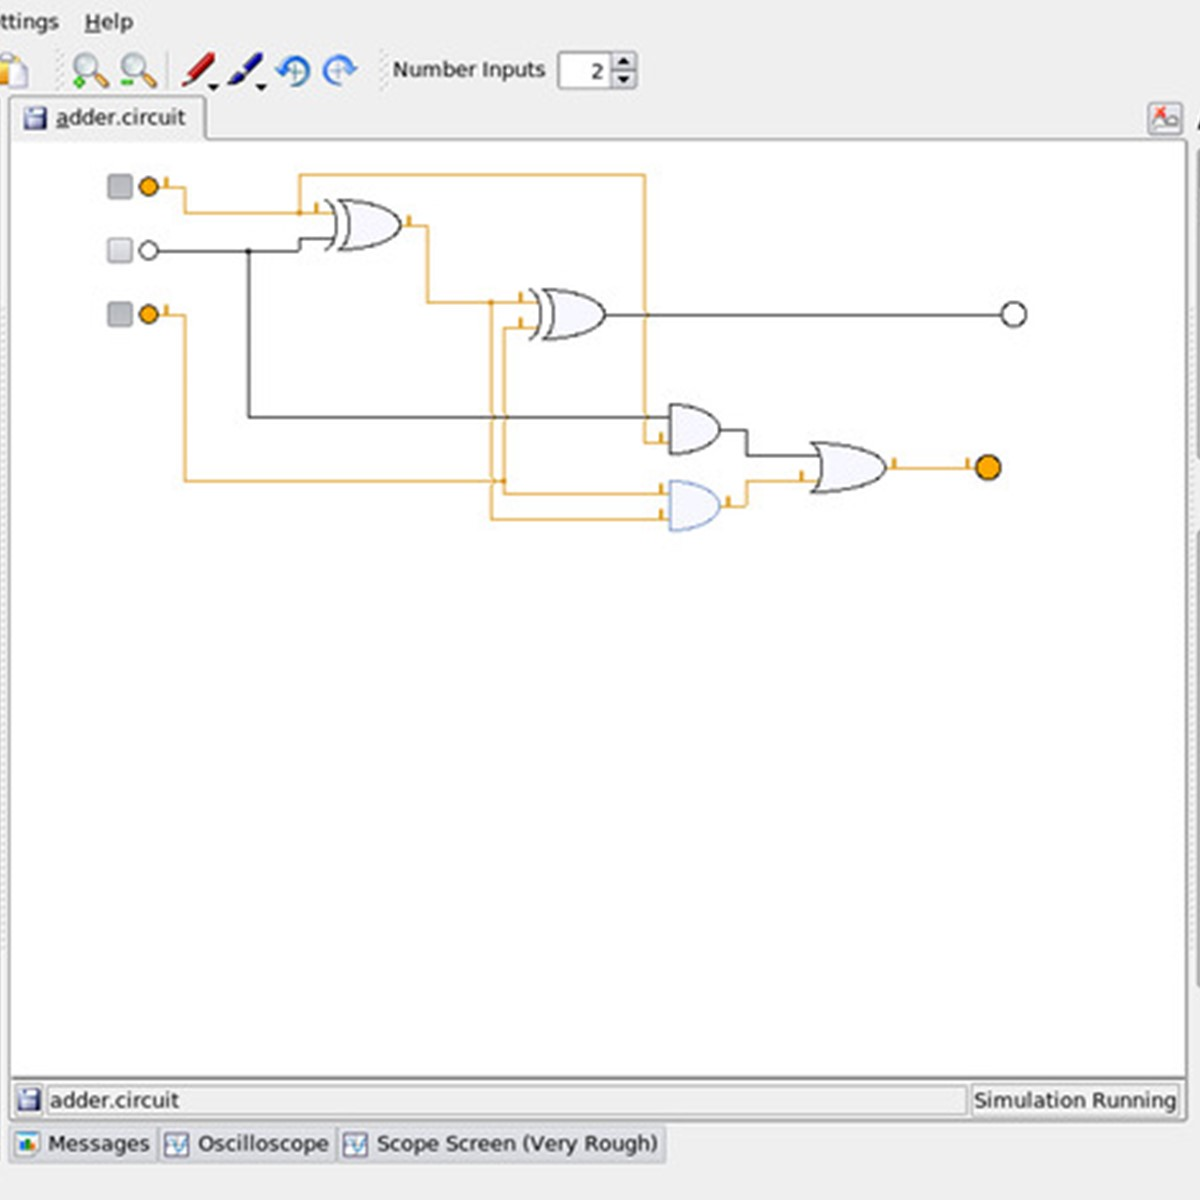 Ktechlab Alternatives And Similar Software Is Very Useful When Simulating This Type Of Circuit Diagram